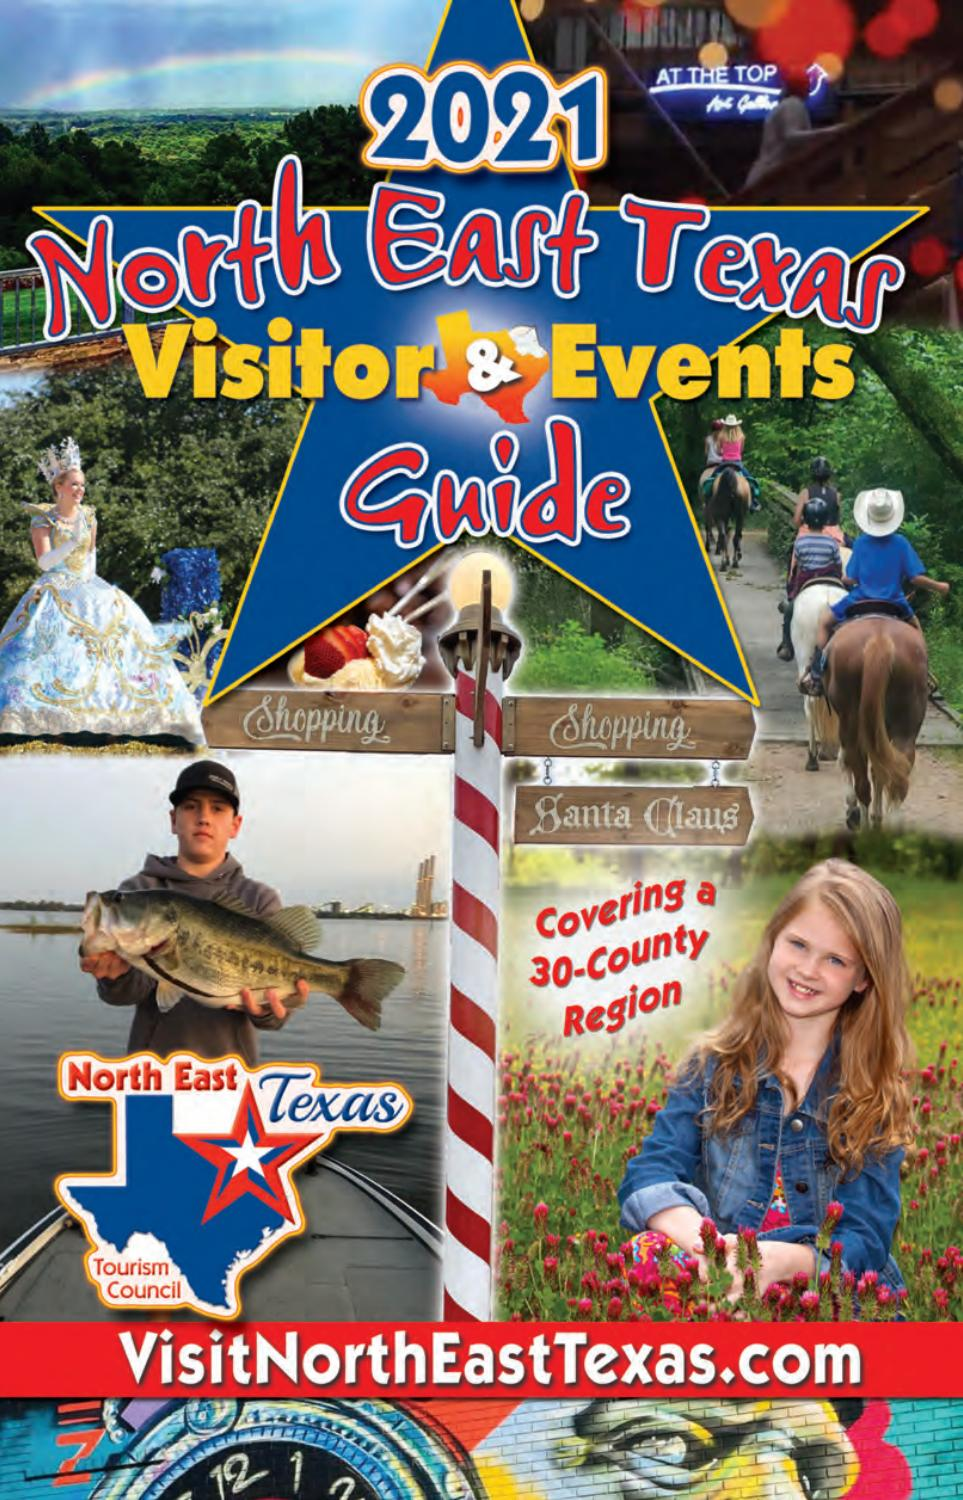 Marshall Tx Christmas Parade Route 2021 North East Texas Visitor Events Guide 2021 By Richardson Media Publishing Issuu